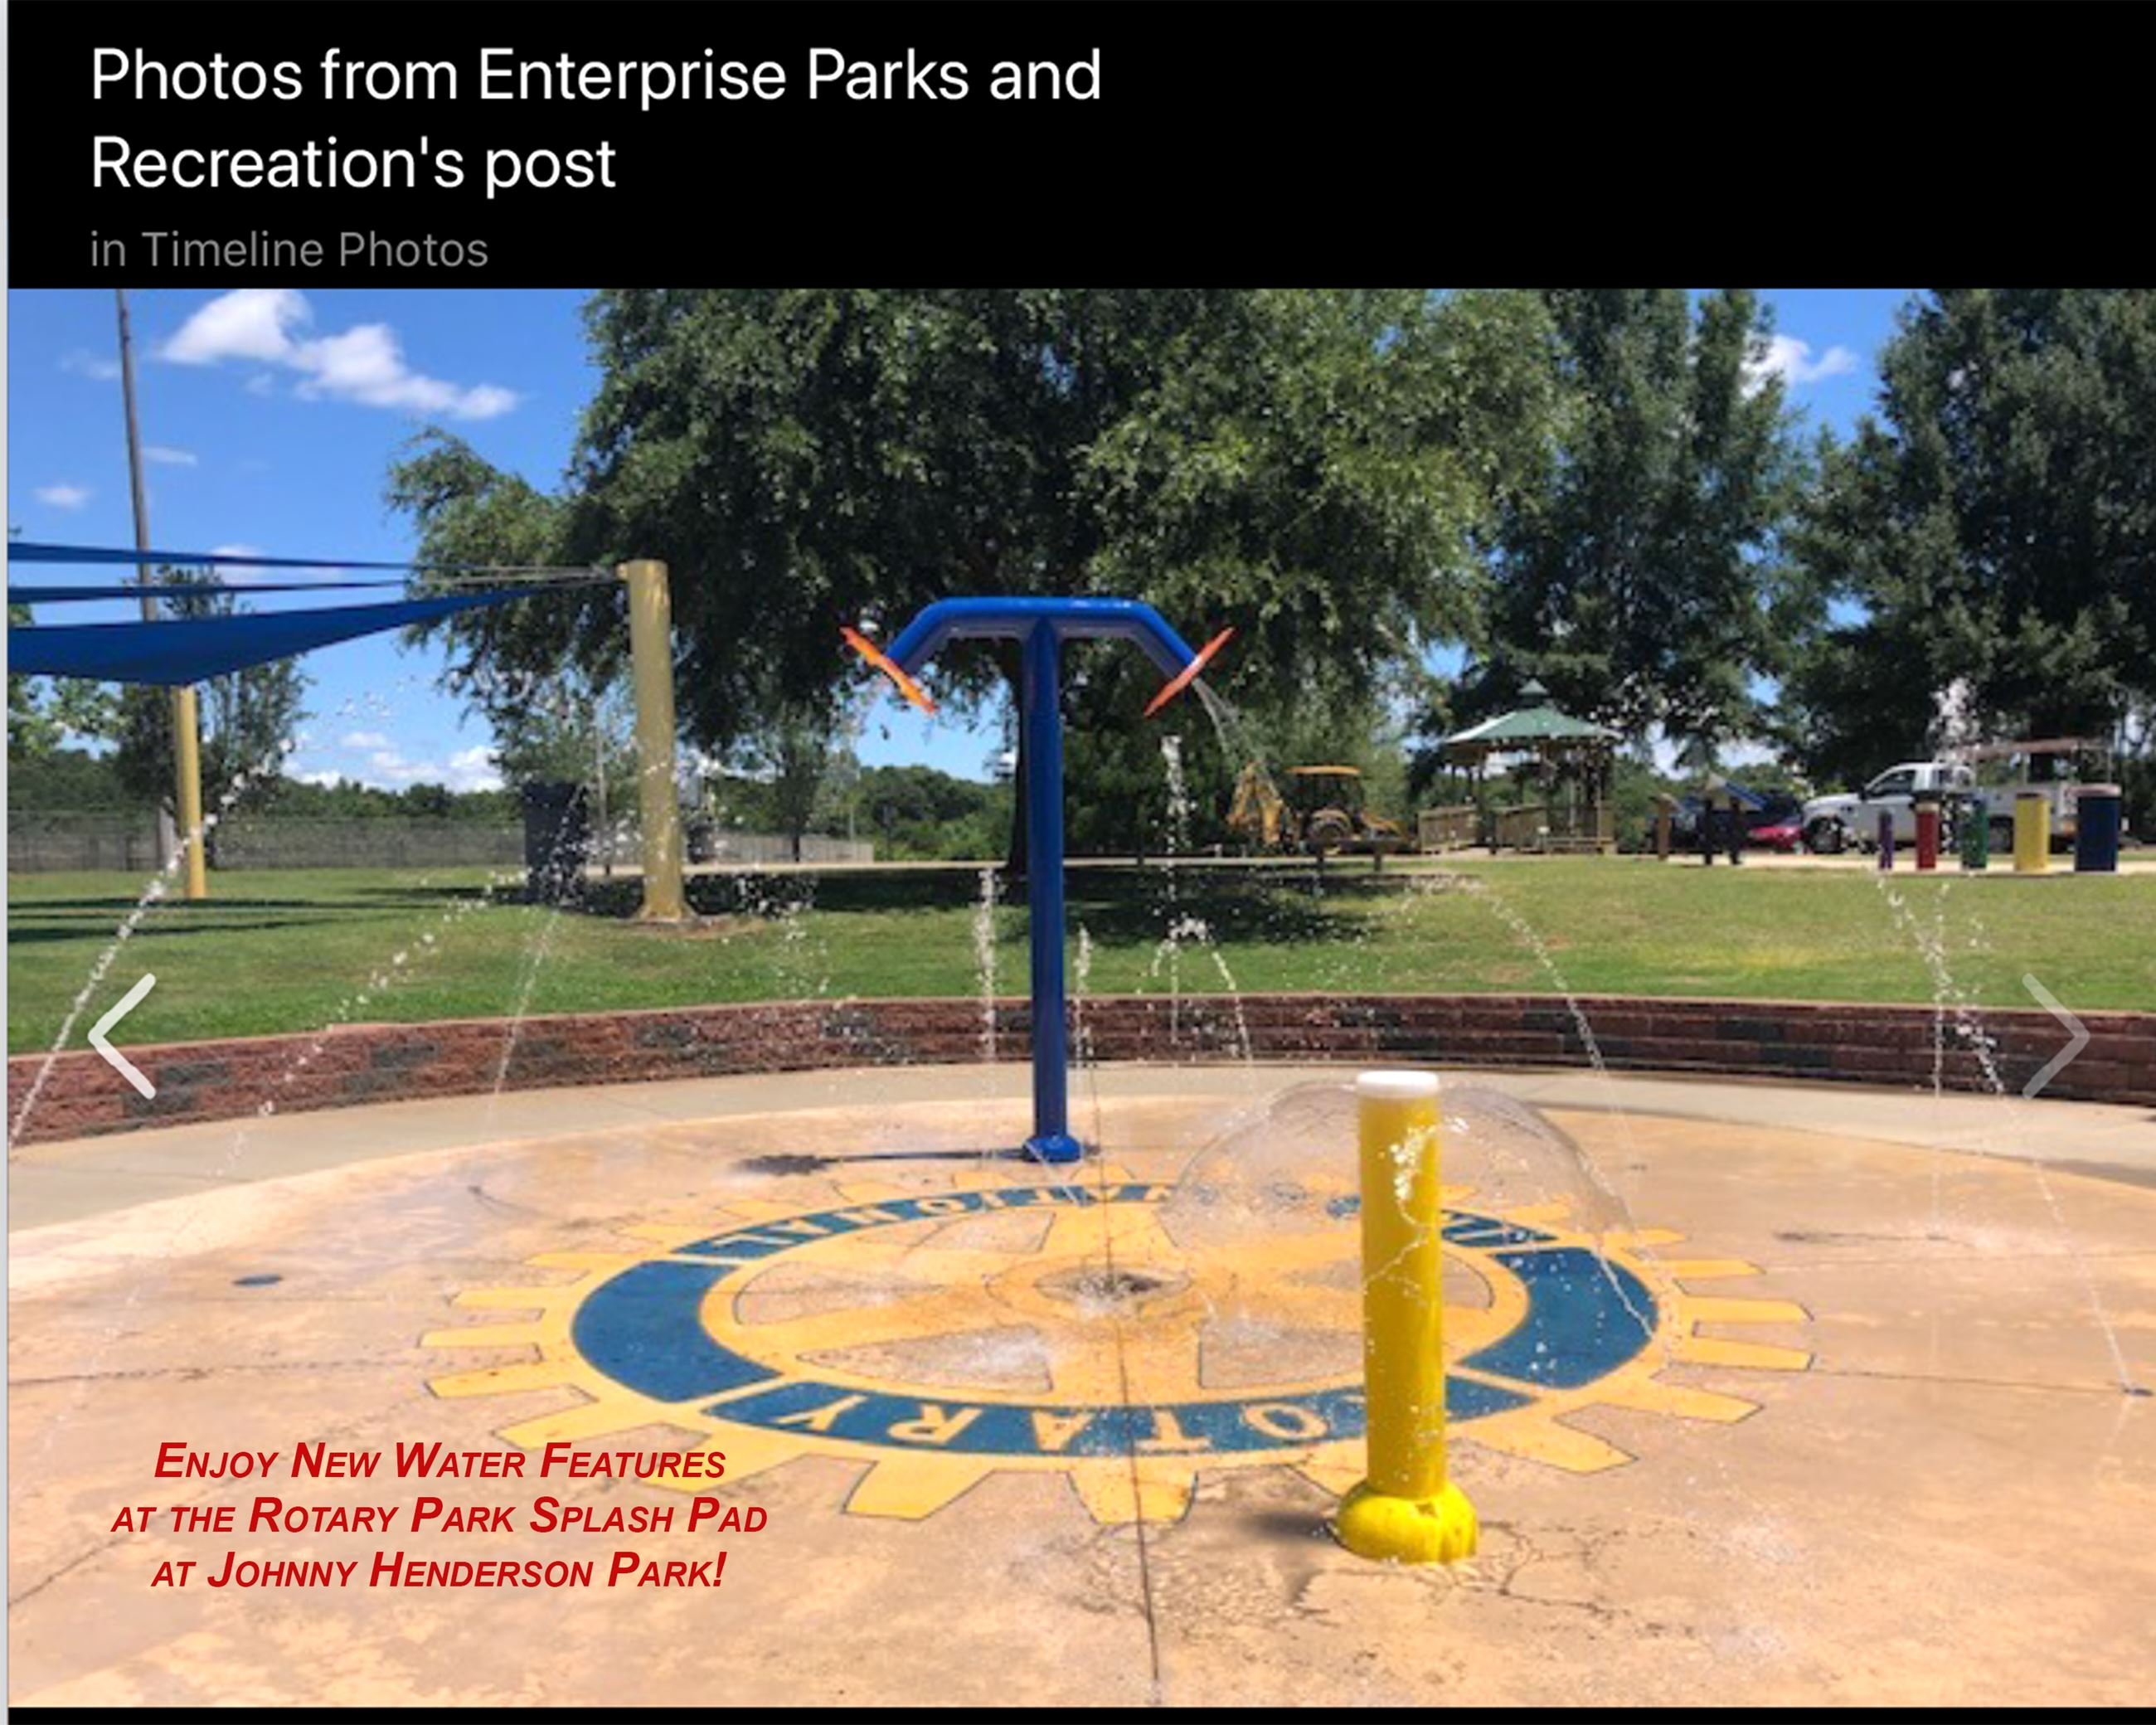 New water features have been added to the Splash Pad at Rotary Park.